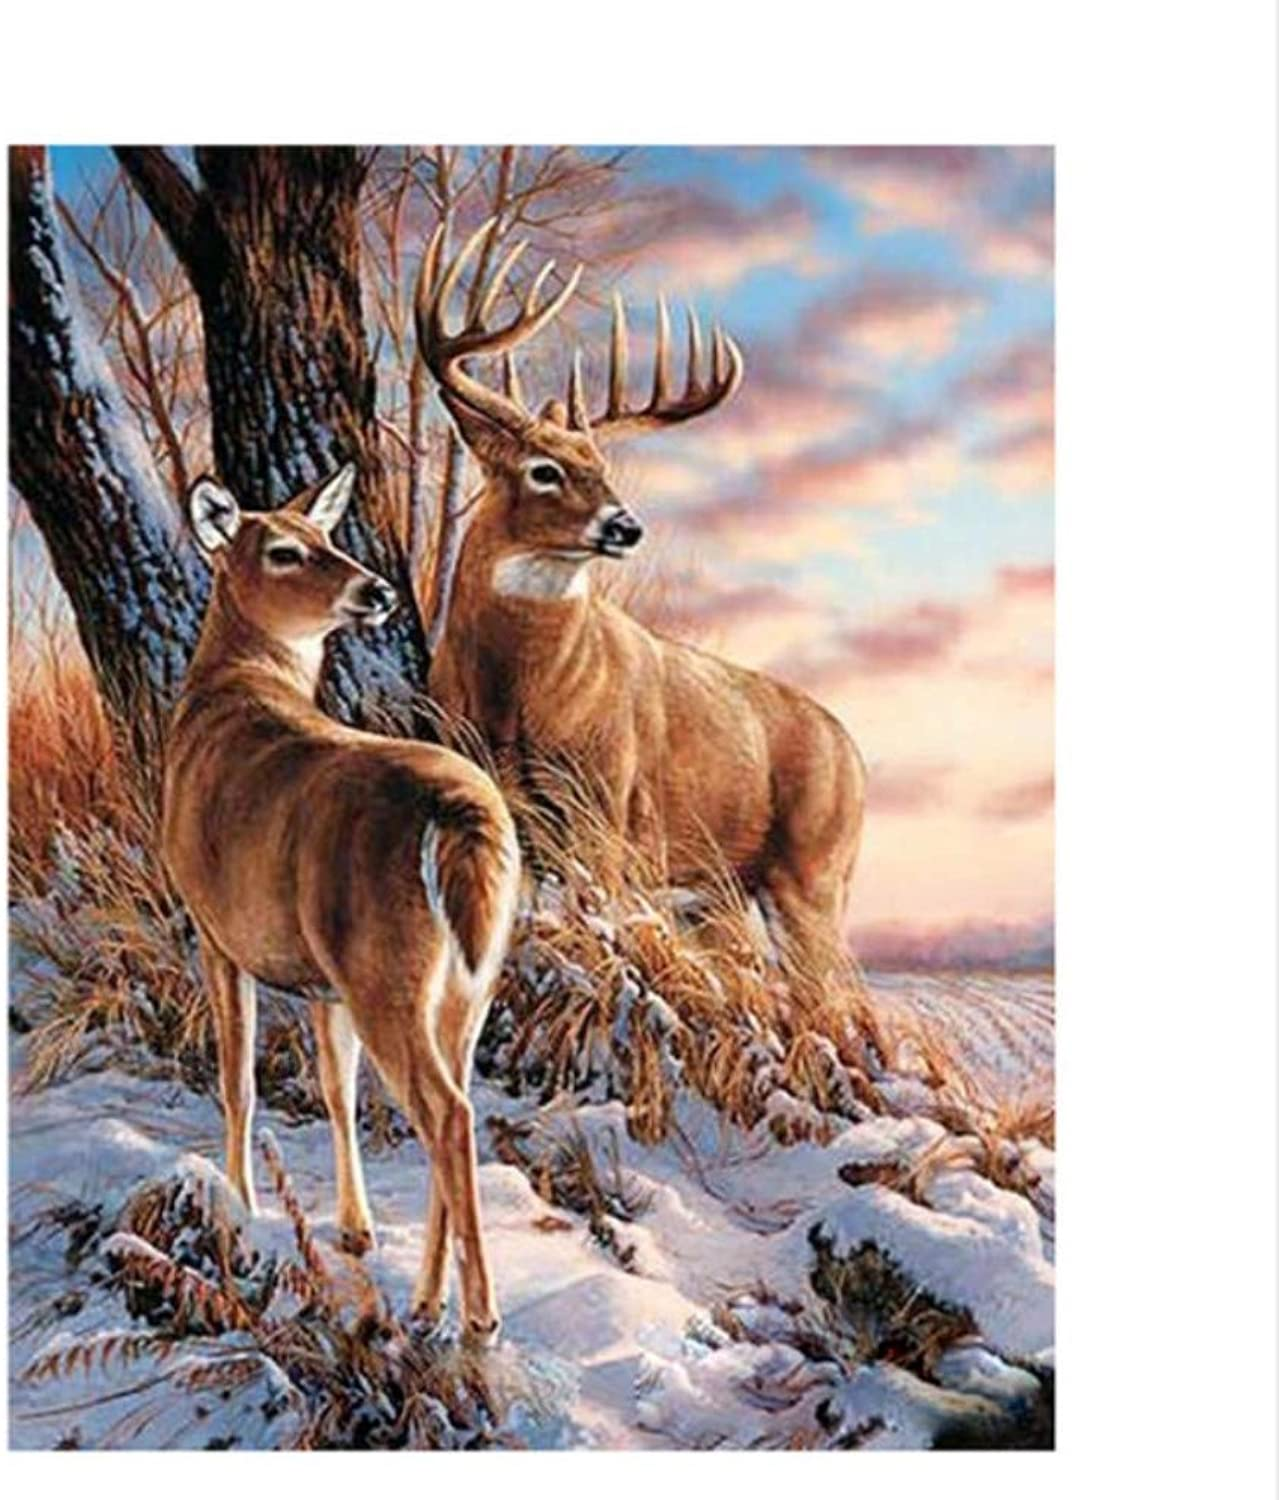 CAYYOU DIY Digital Painting By Numbers The Slope Deer Oil Painting Mural Kits coloring Wall Art Picture Gift  Framed  50x60cm